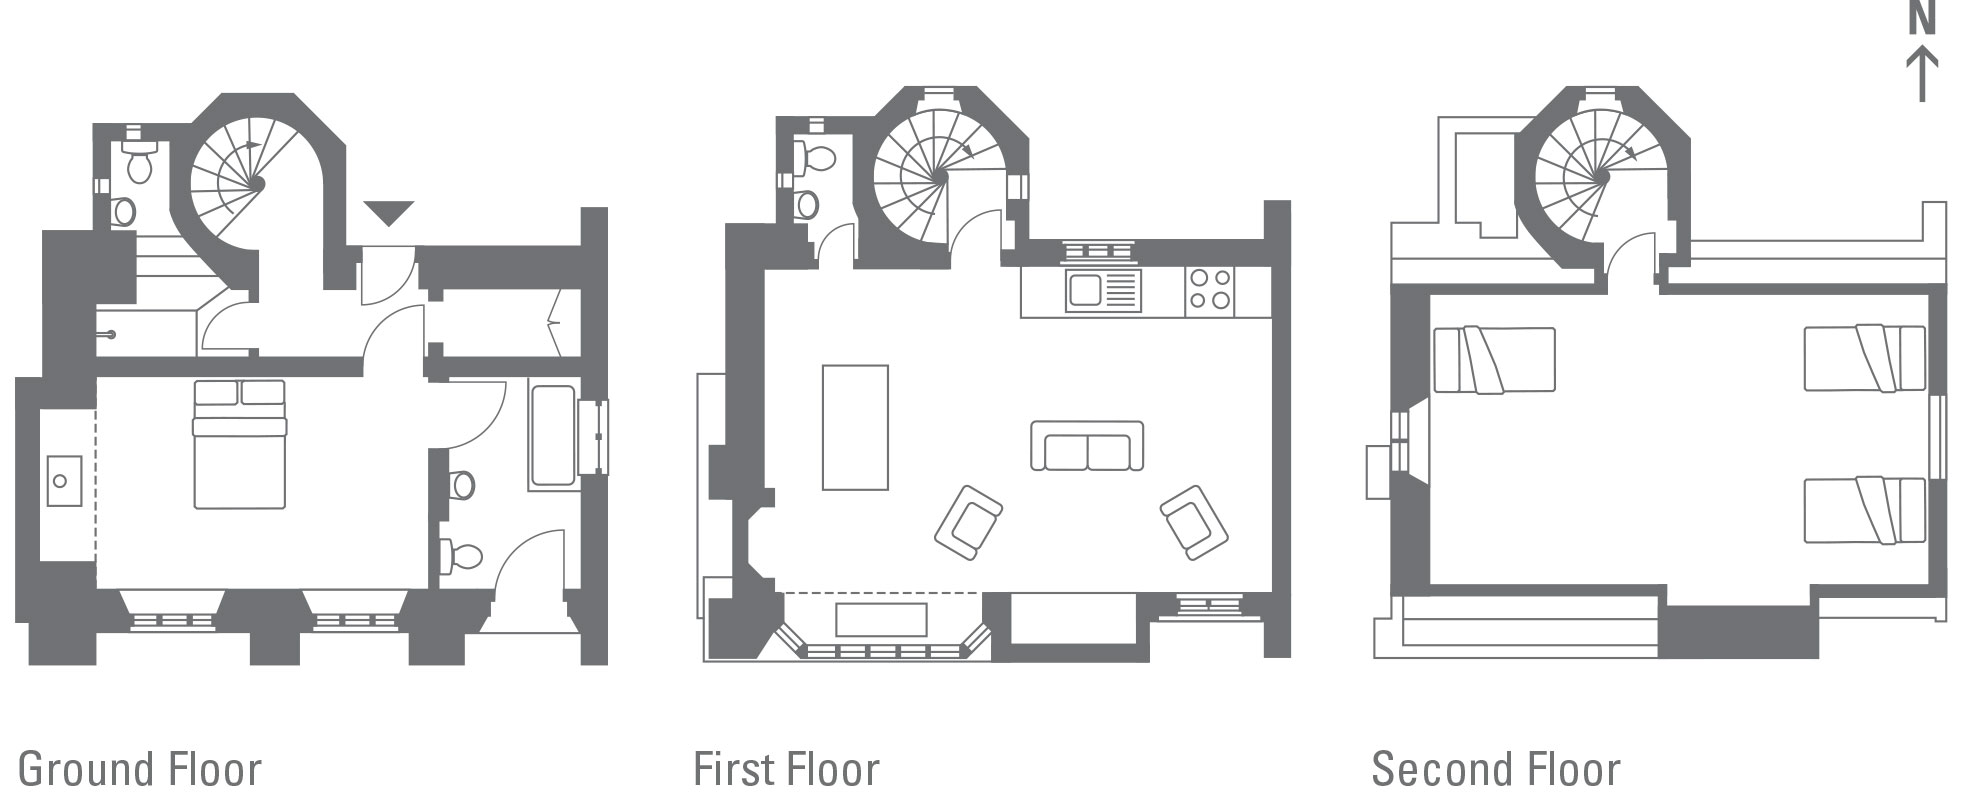 holiday at warden abbey in old warden bedfordshire the landmark floor plans